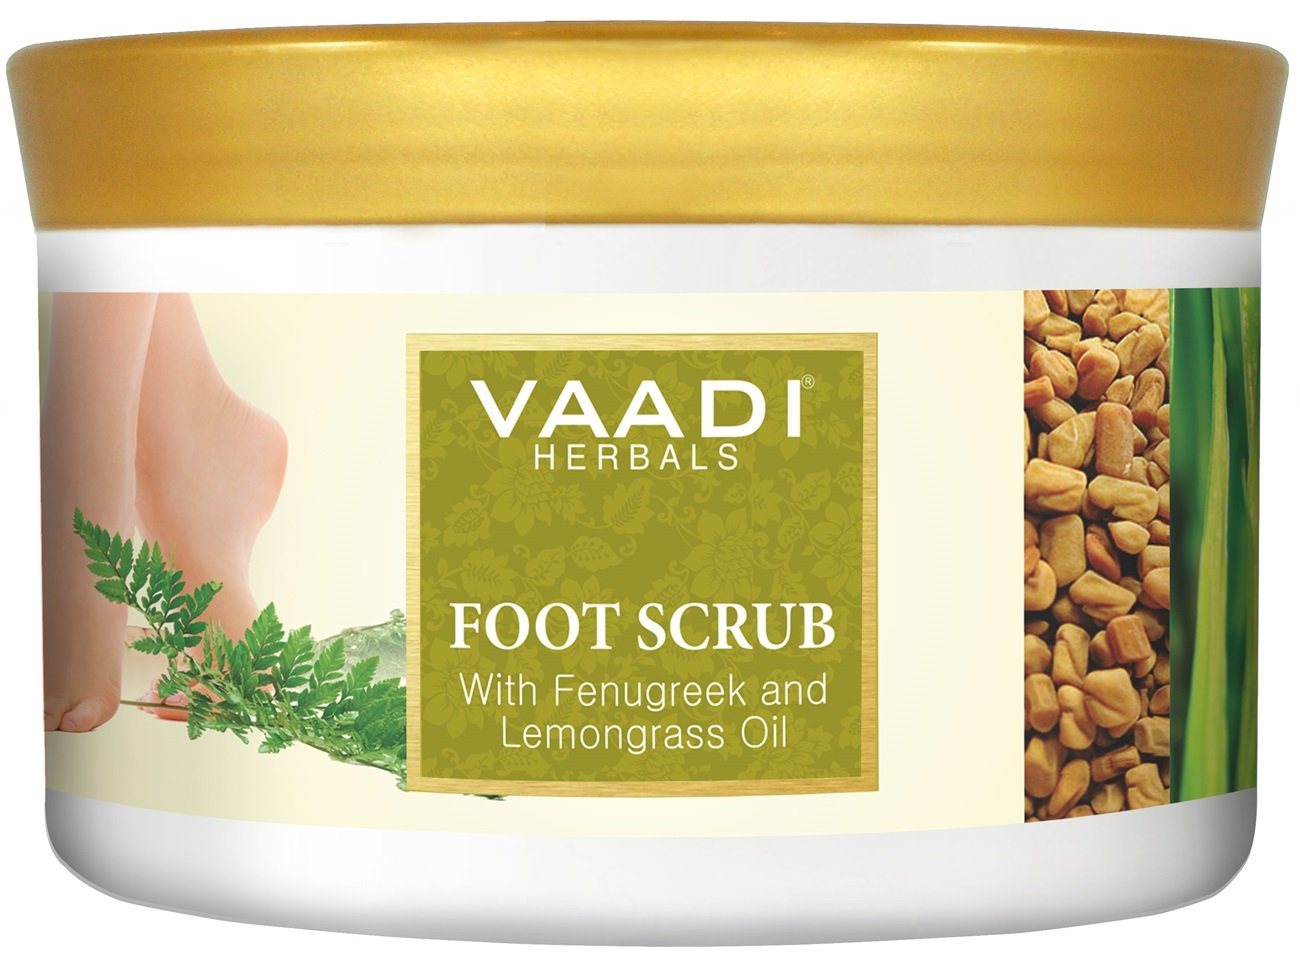 Foot Scrub - Foot Scrub Exfoliator - Foot Scrub Cream - Natural, Anti-fungal Callus Remover - Fast Absorbing - Makes Your Feet Super Soft - Vaadi Herbals (Pack of 1 X 500Gm) (17.64 Oz) by Vaadi Herbals